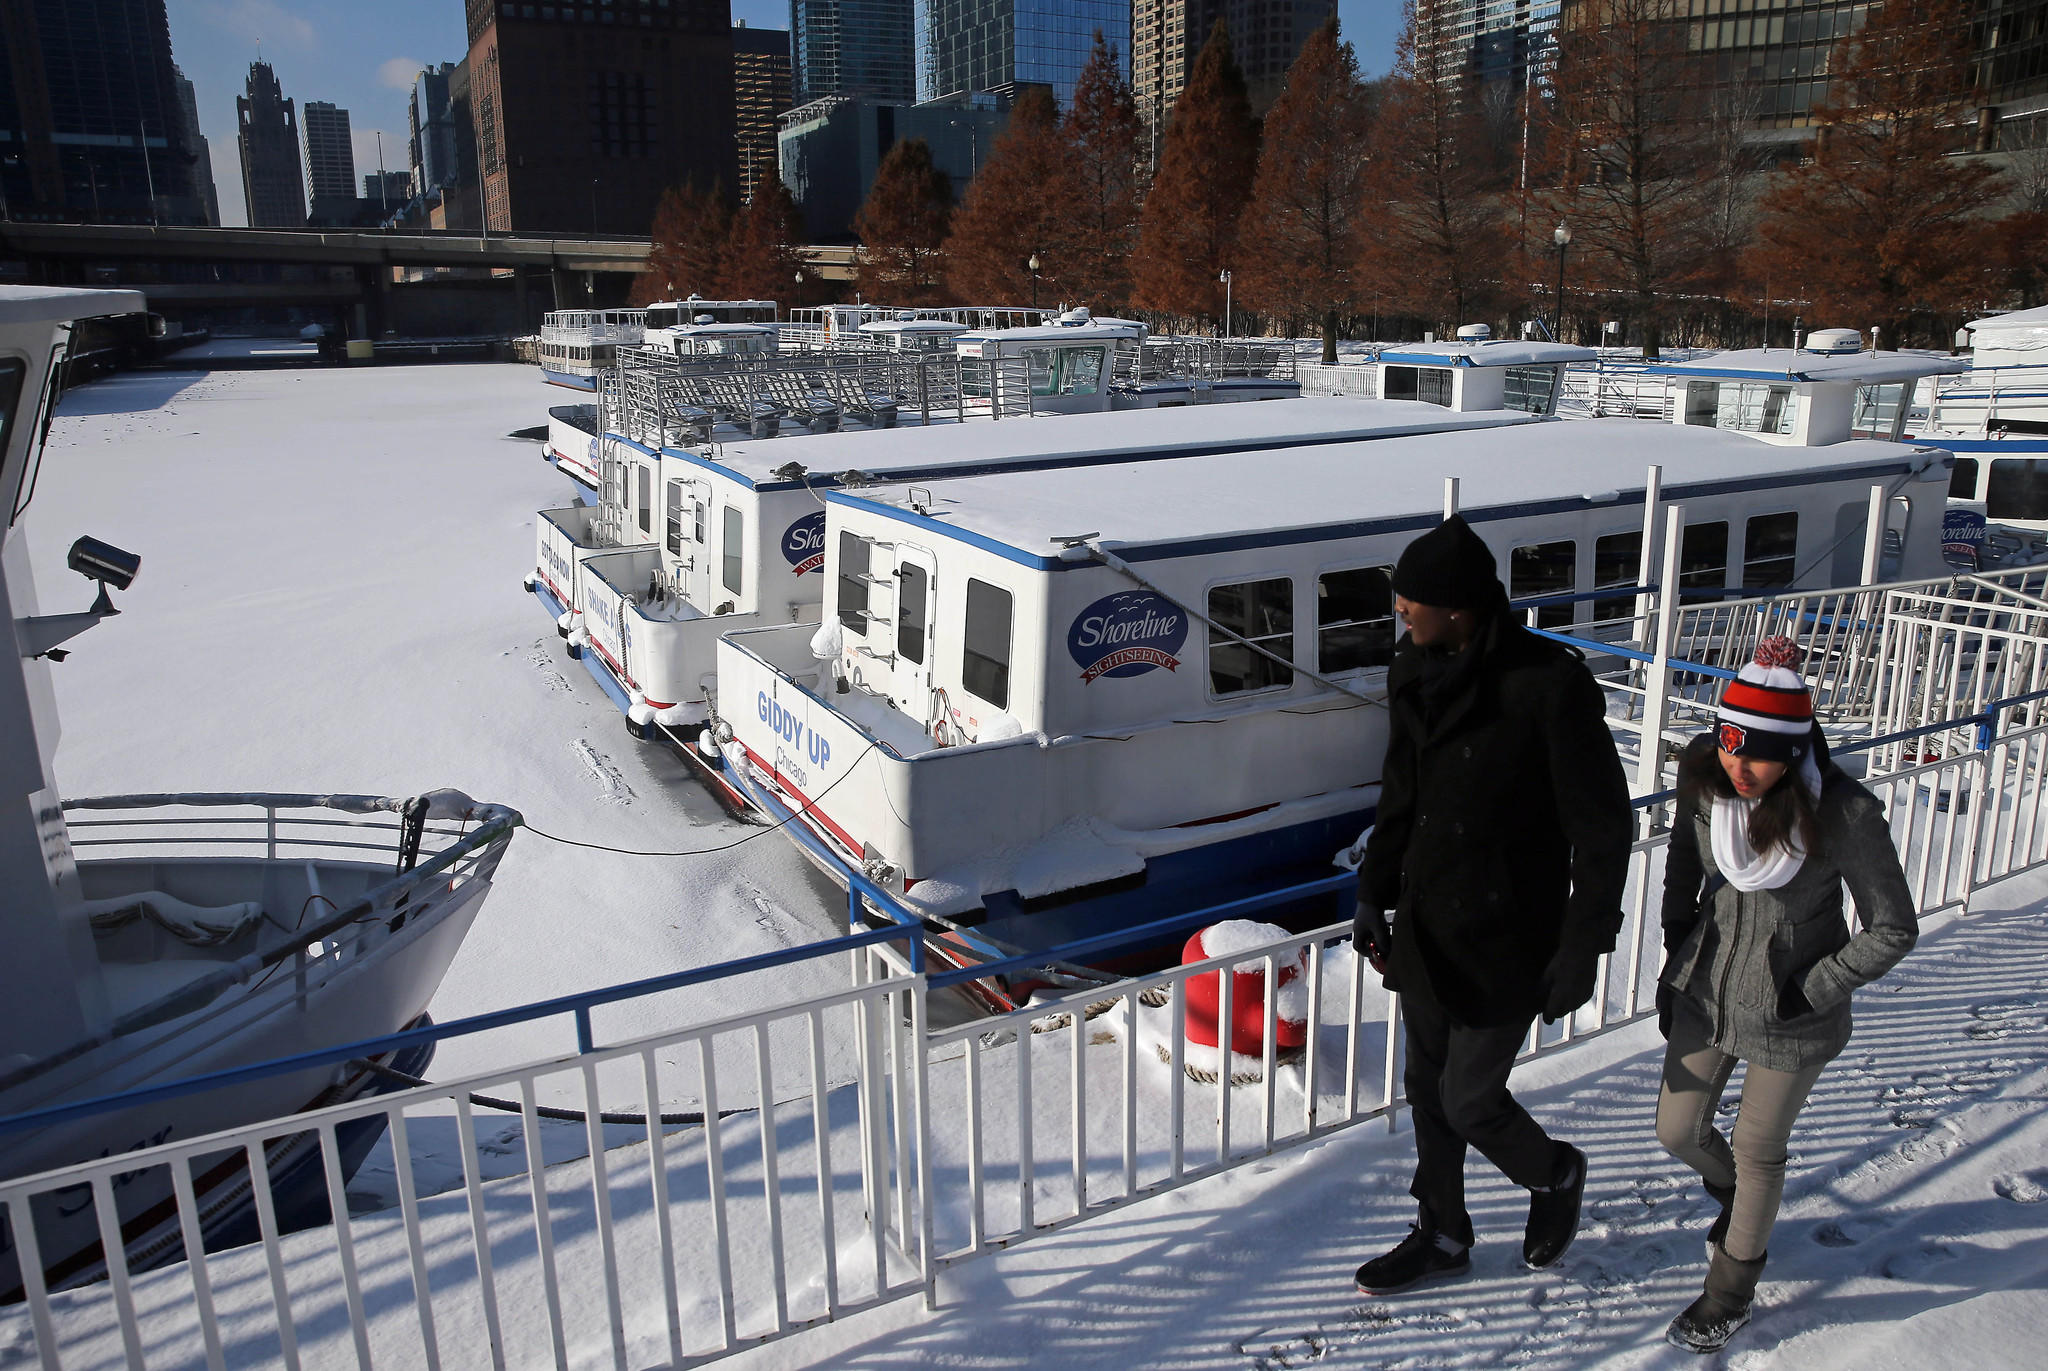 Shoreline cruise boats sit surrounded by ice near Gateway Park at Navy Pier.